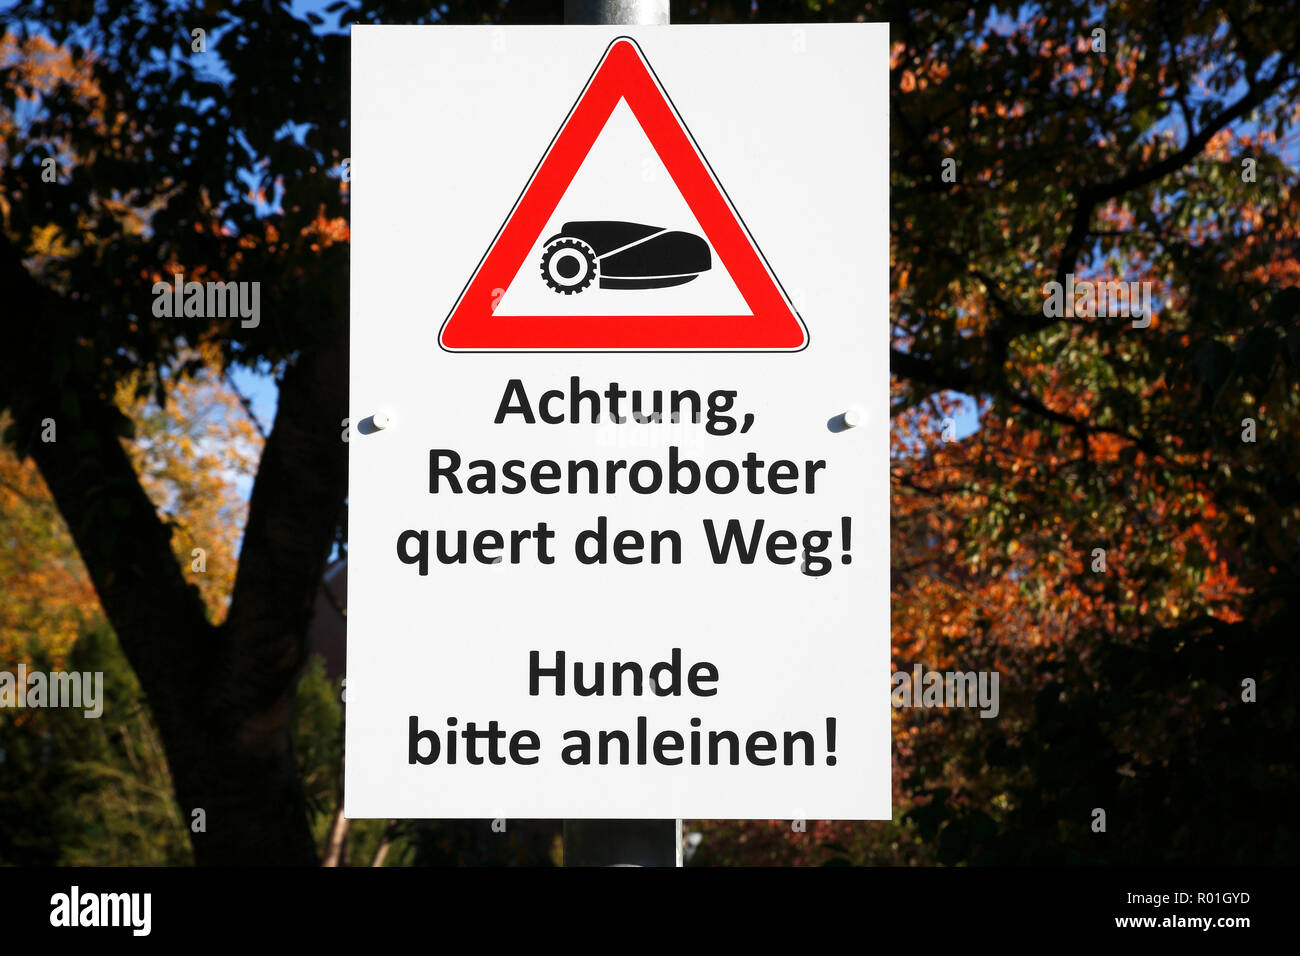 Warning sign for lawn mower robot, danger for free-running dogs, Schleswig-Holstein, Germany - Stock Image